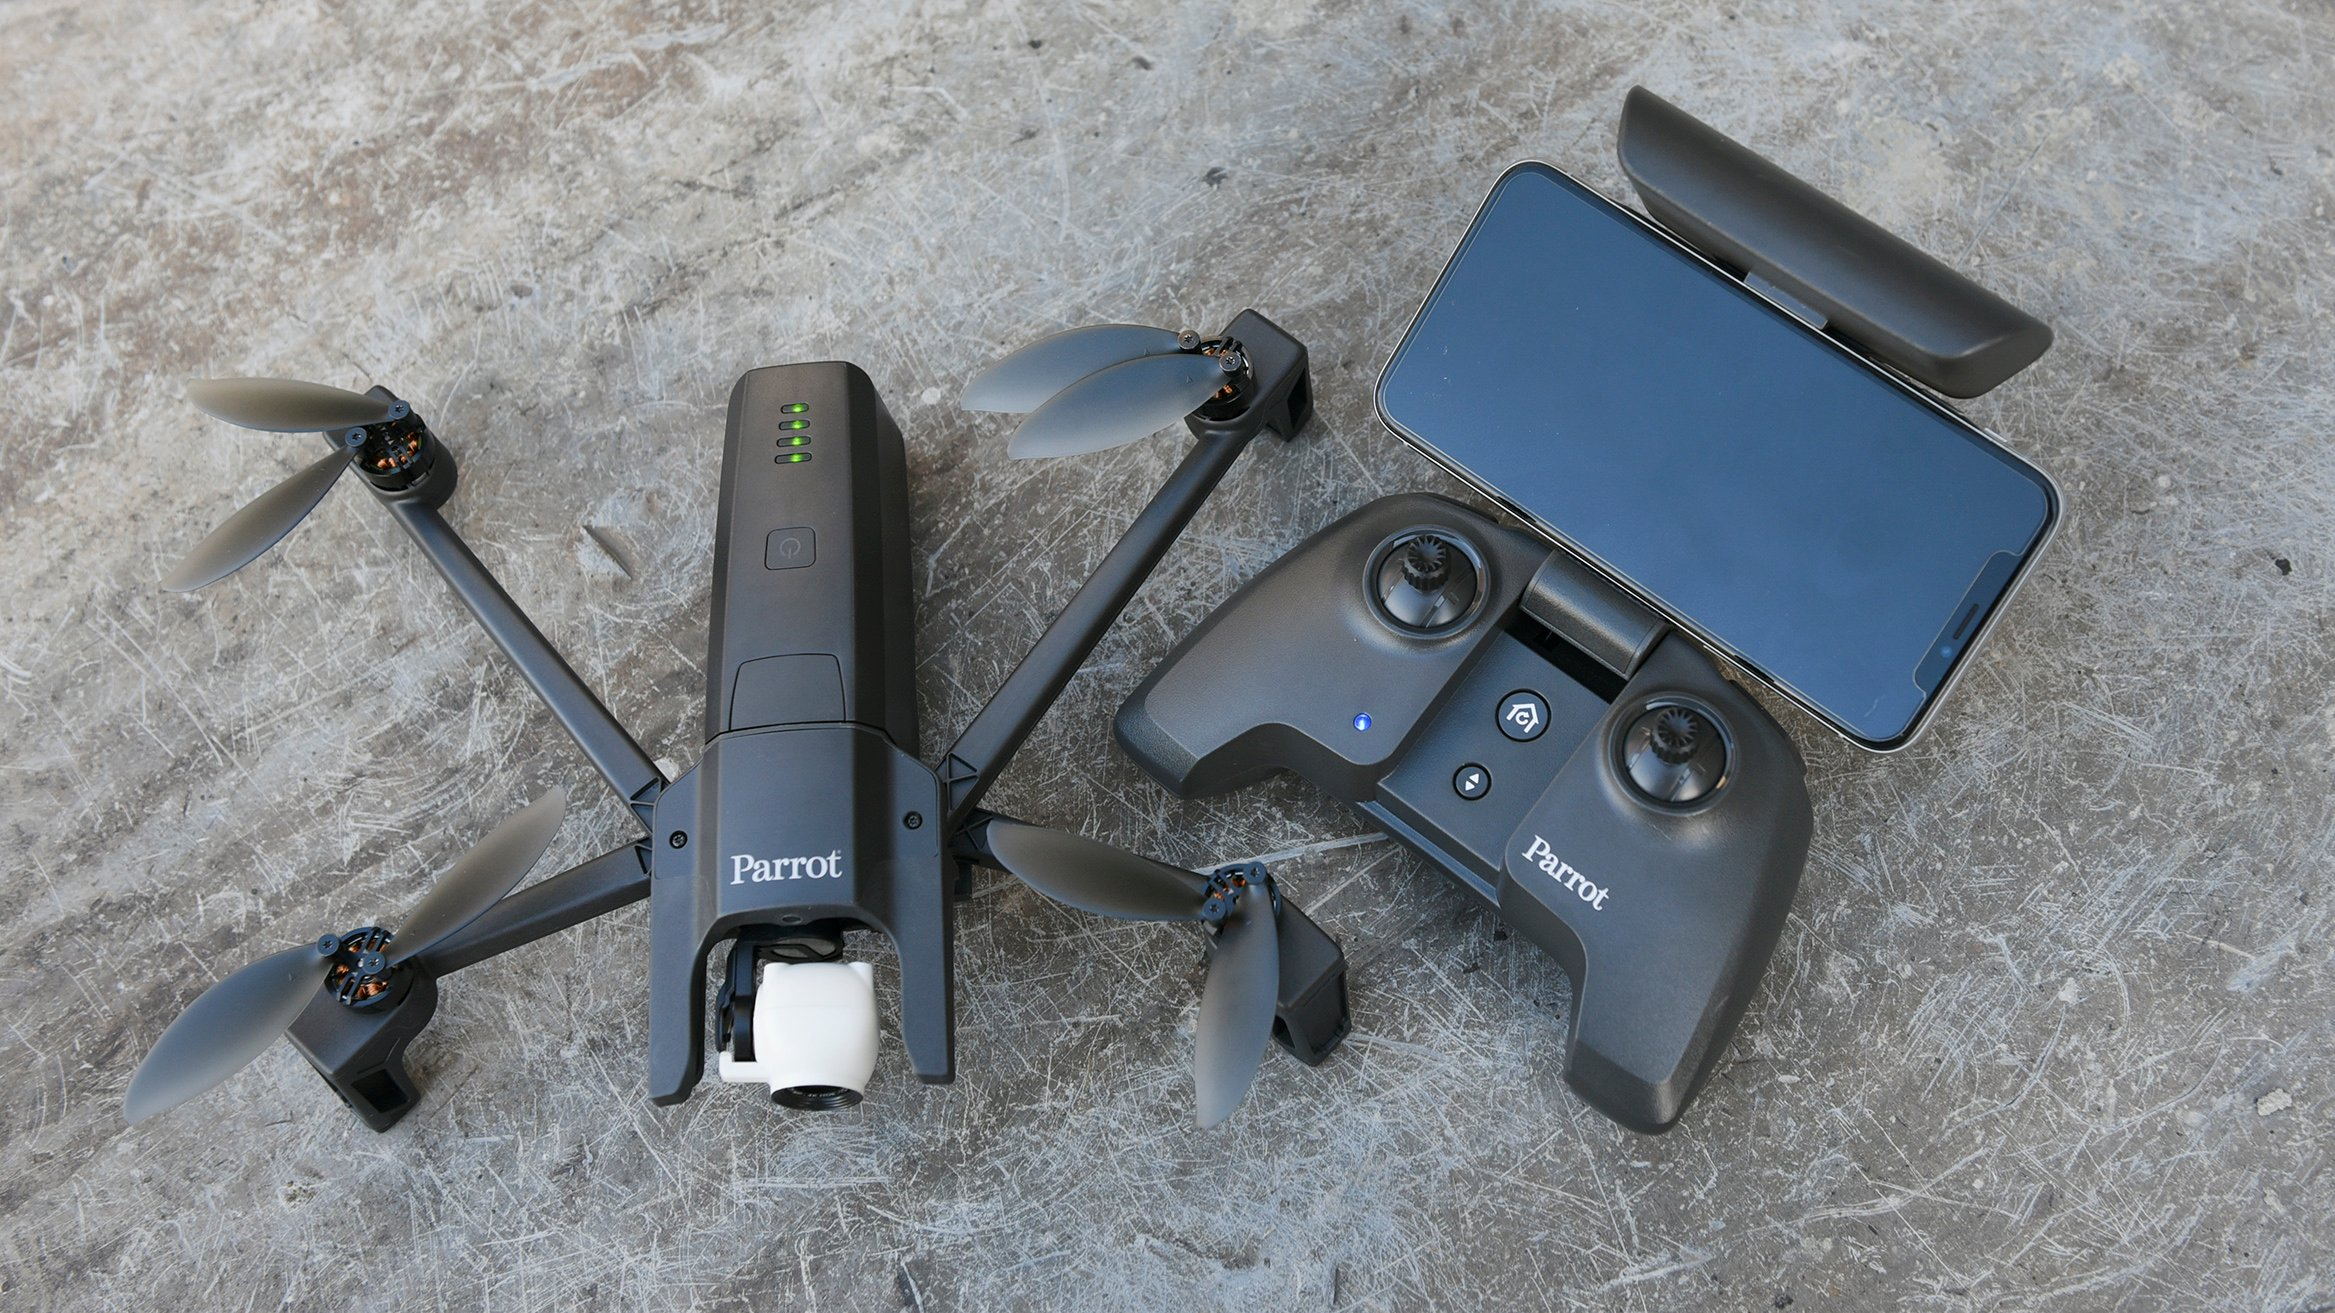 Image Result For Best Small Video Drone